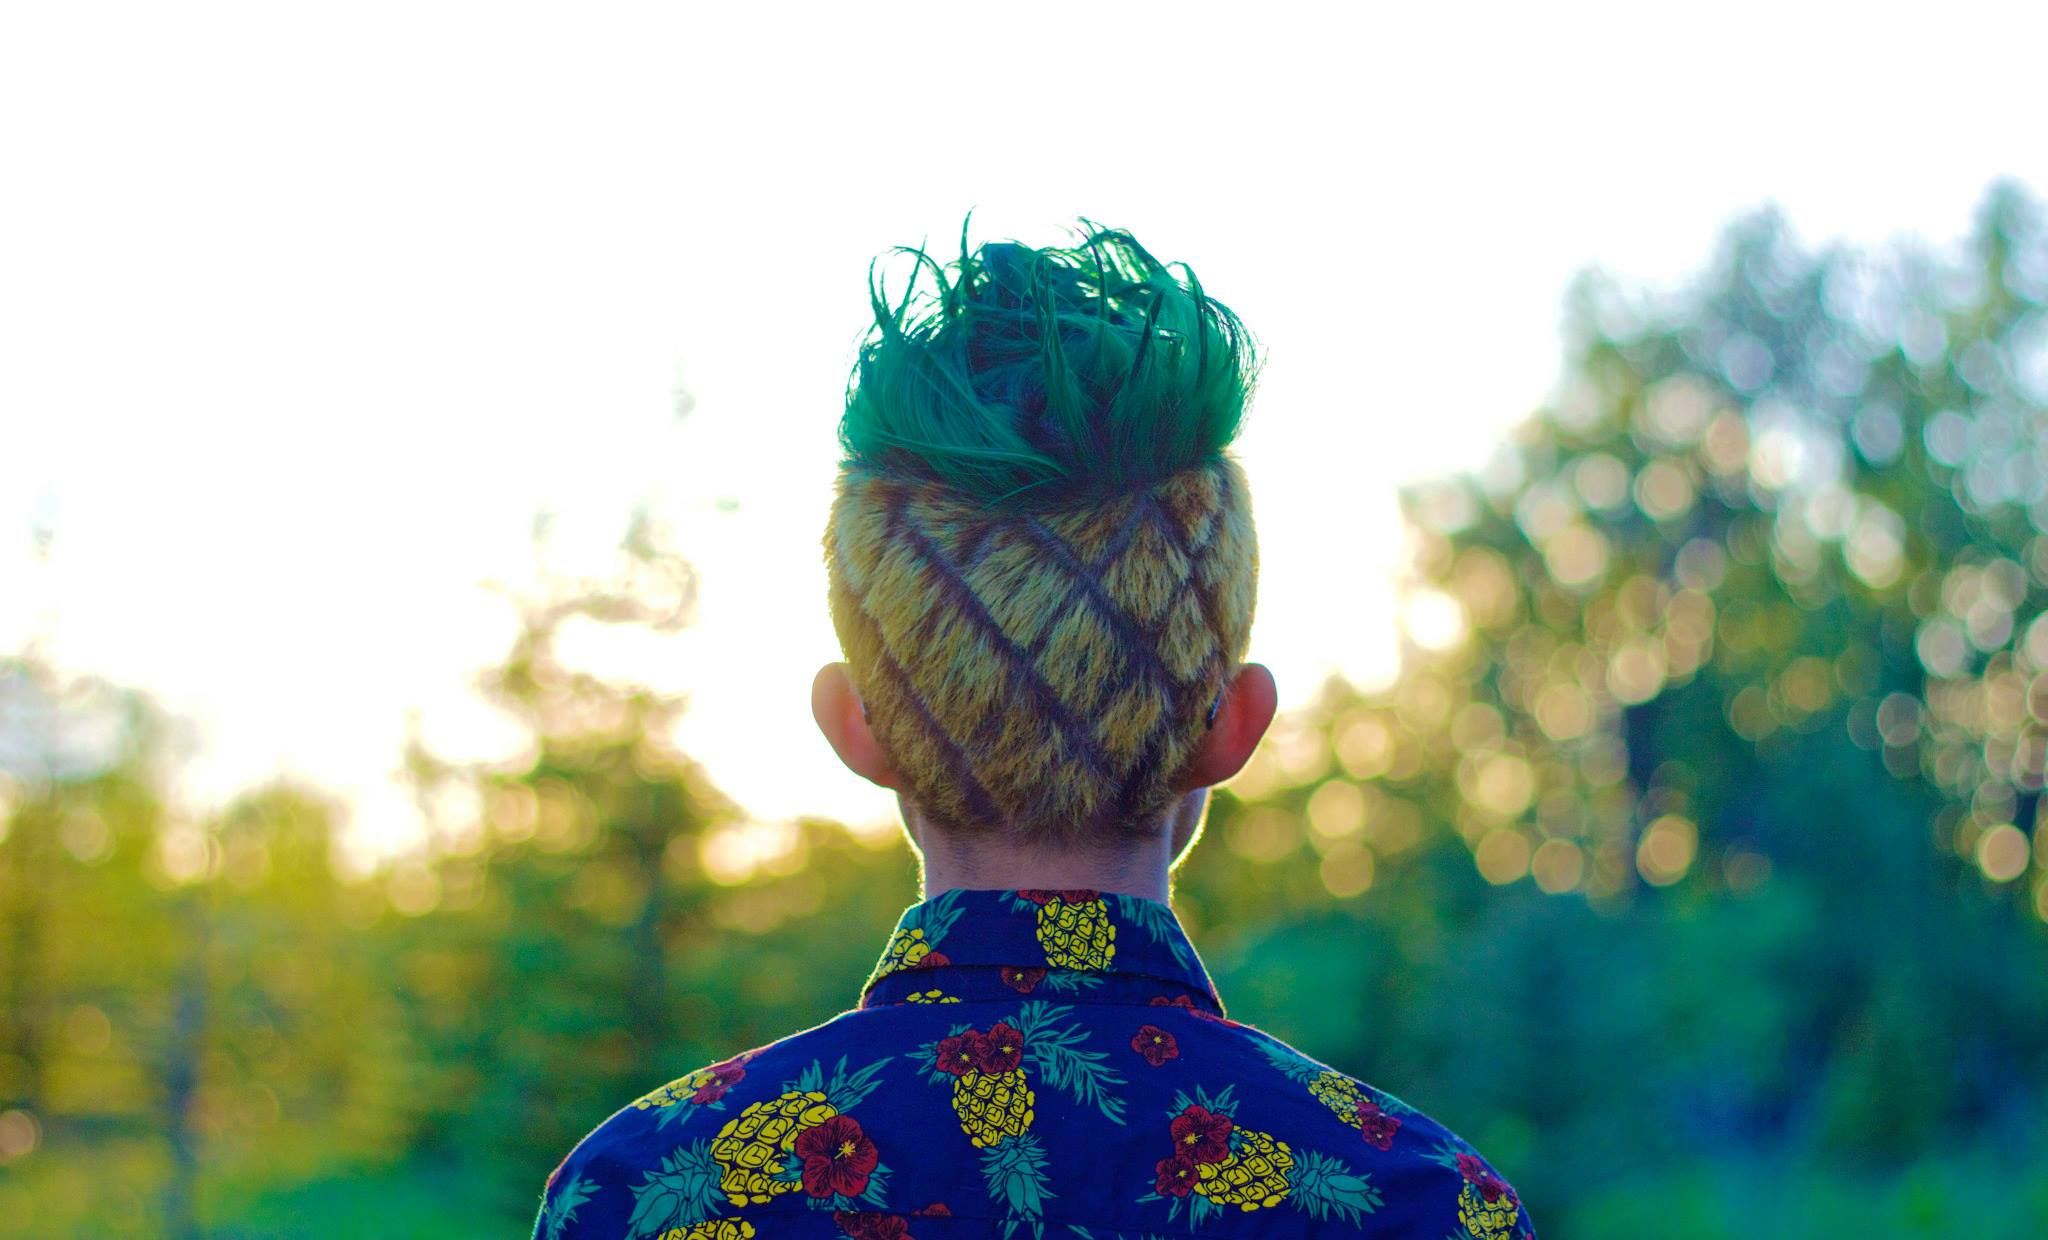 This teen shaved his head to look like a pineapple and it's amazing